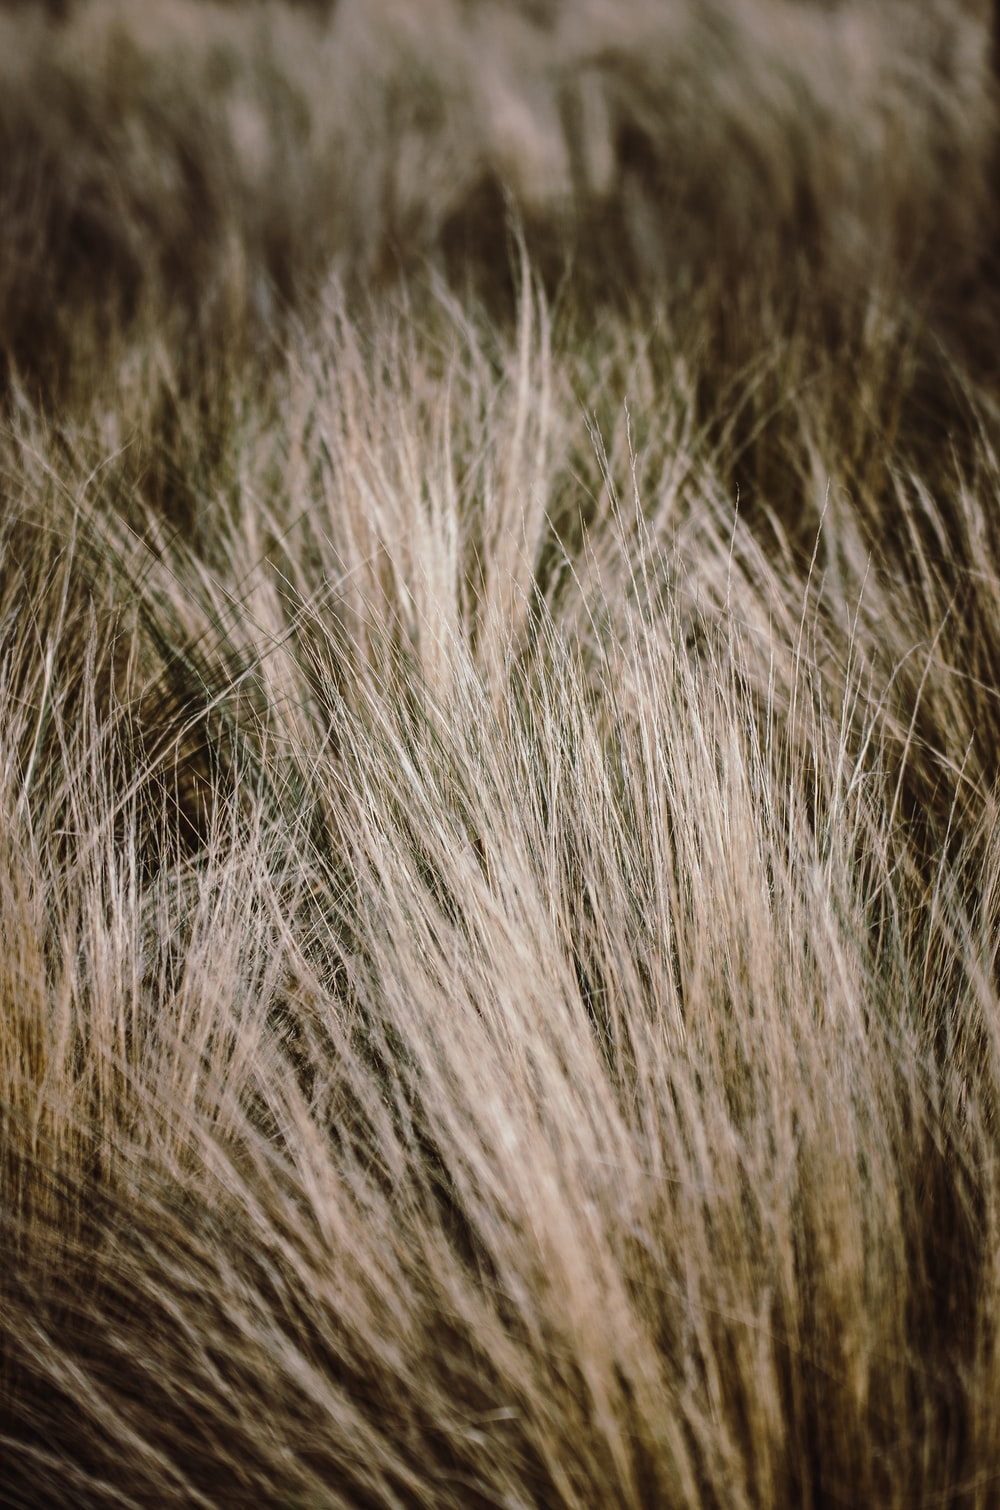 white and brown grass in close up photography